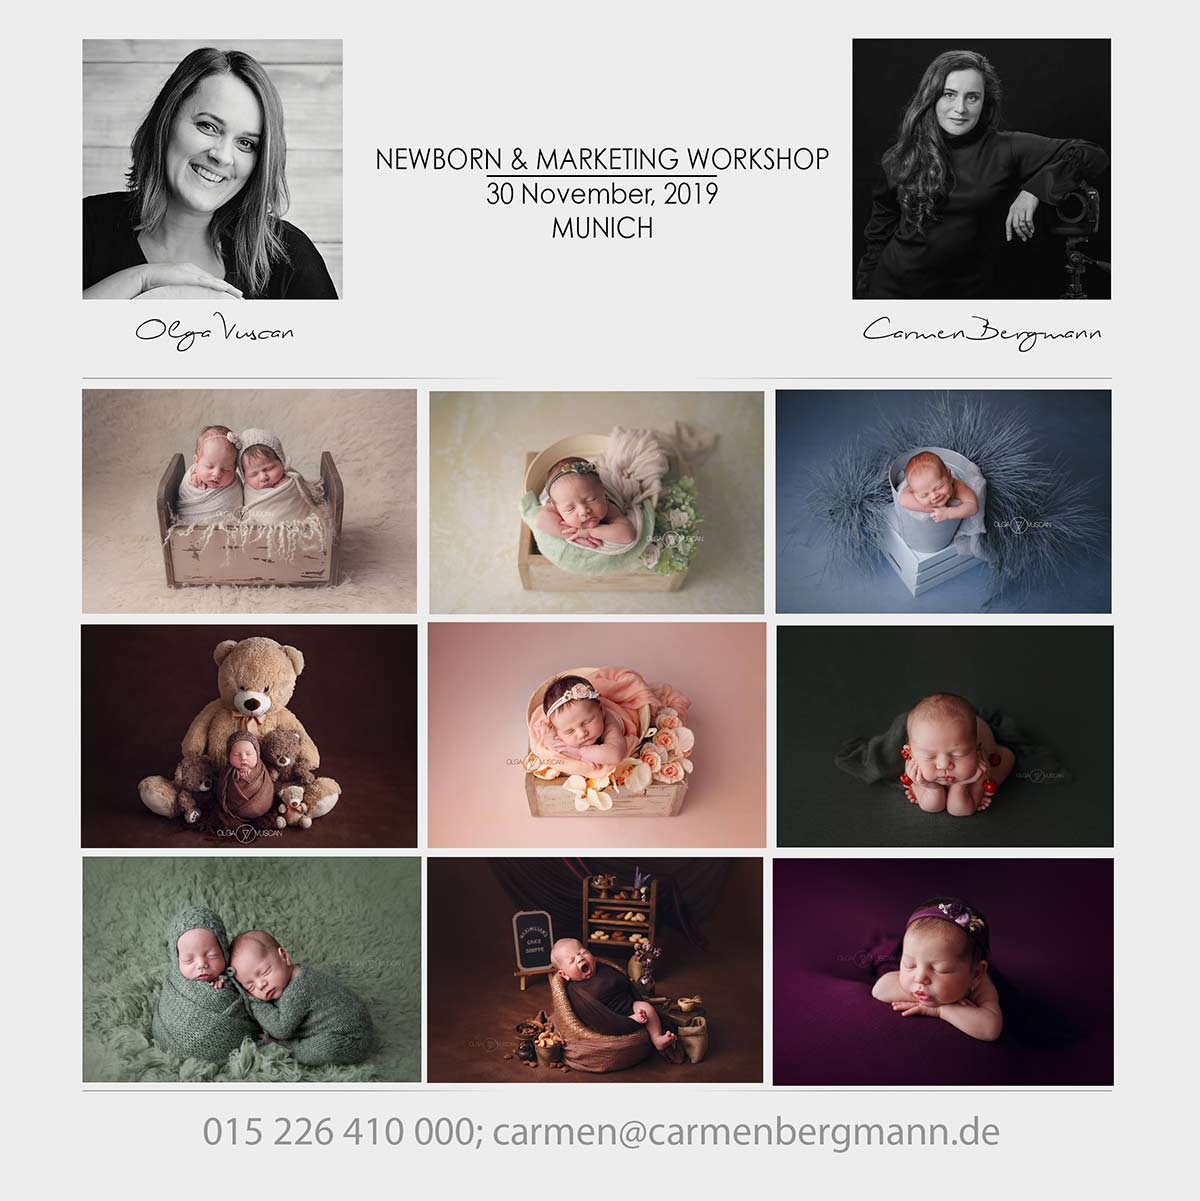 Carmen Bergmann and Olga Vuscan Worhop newborn photography marketing for photographers